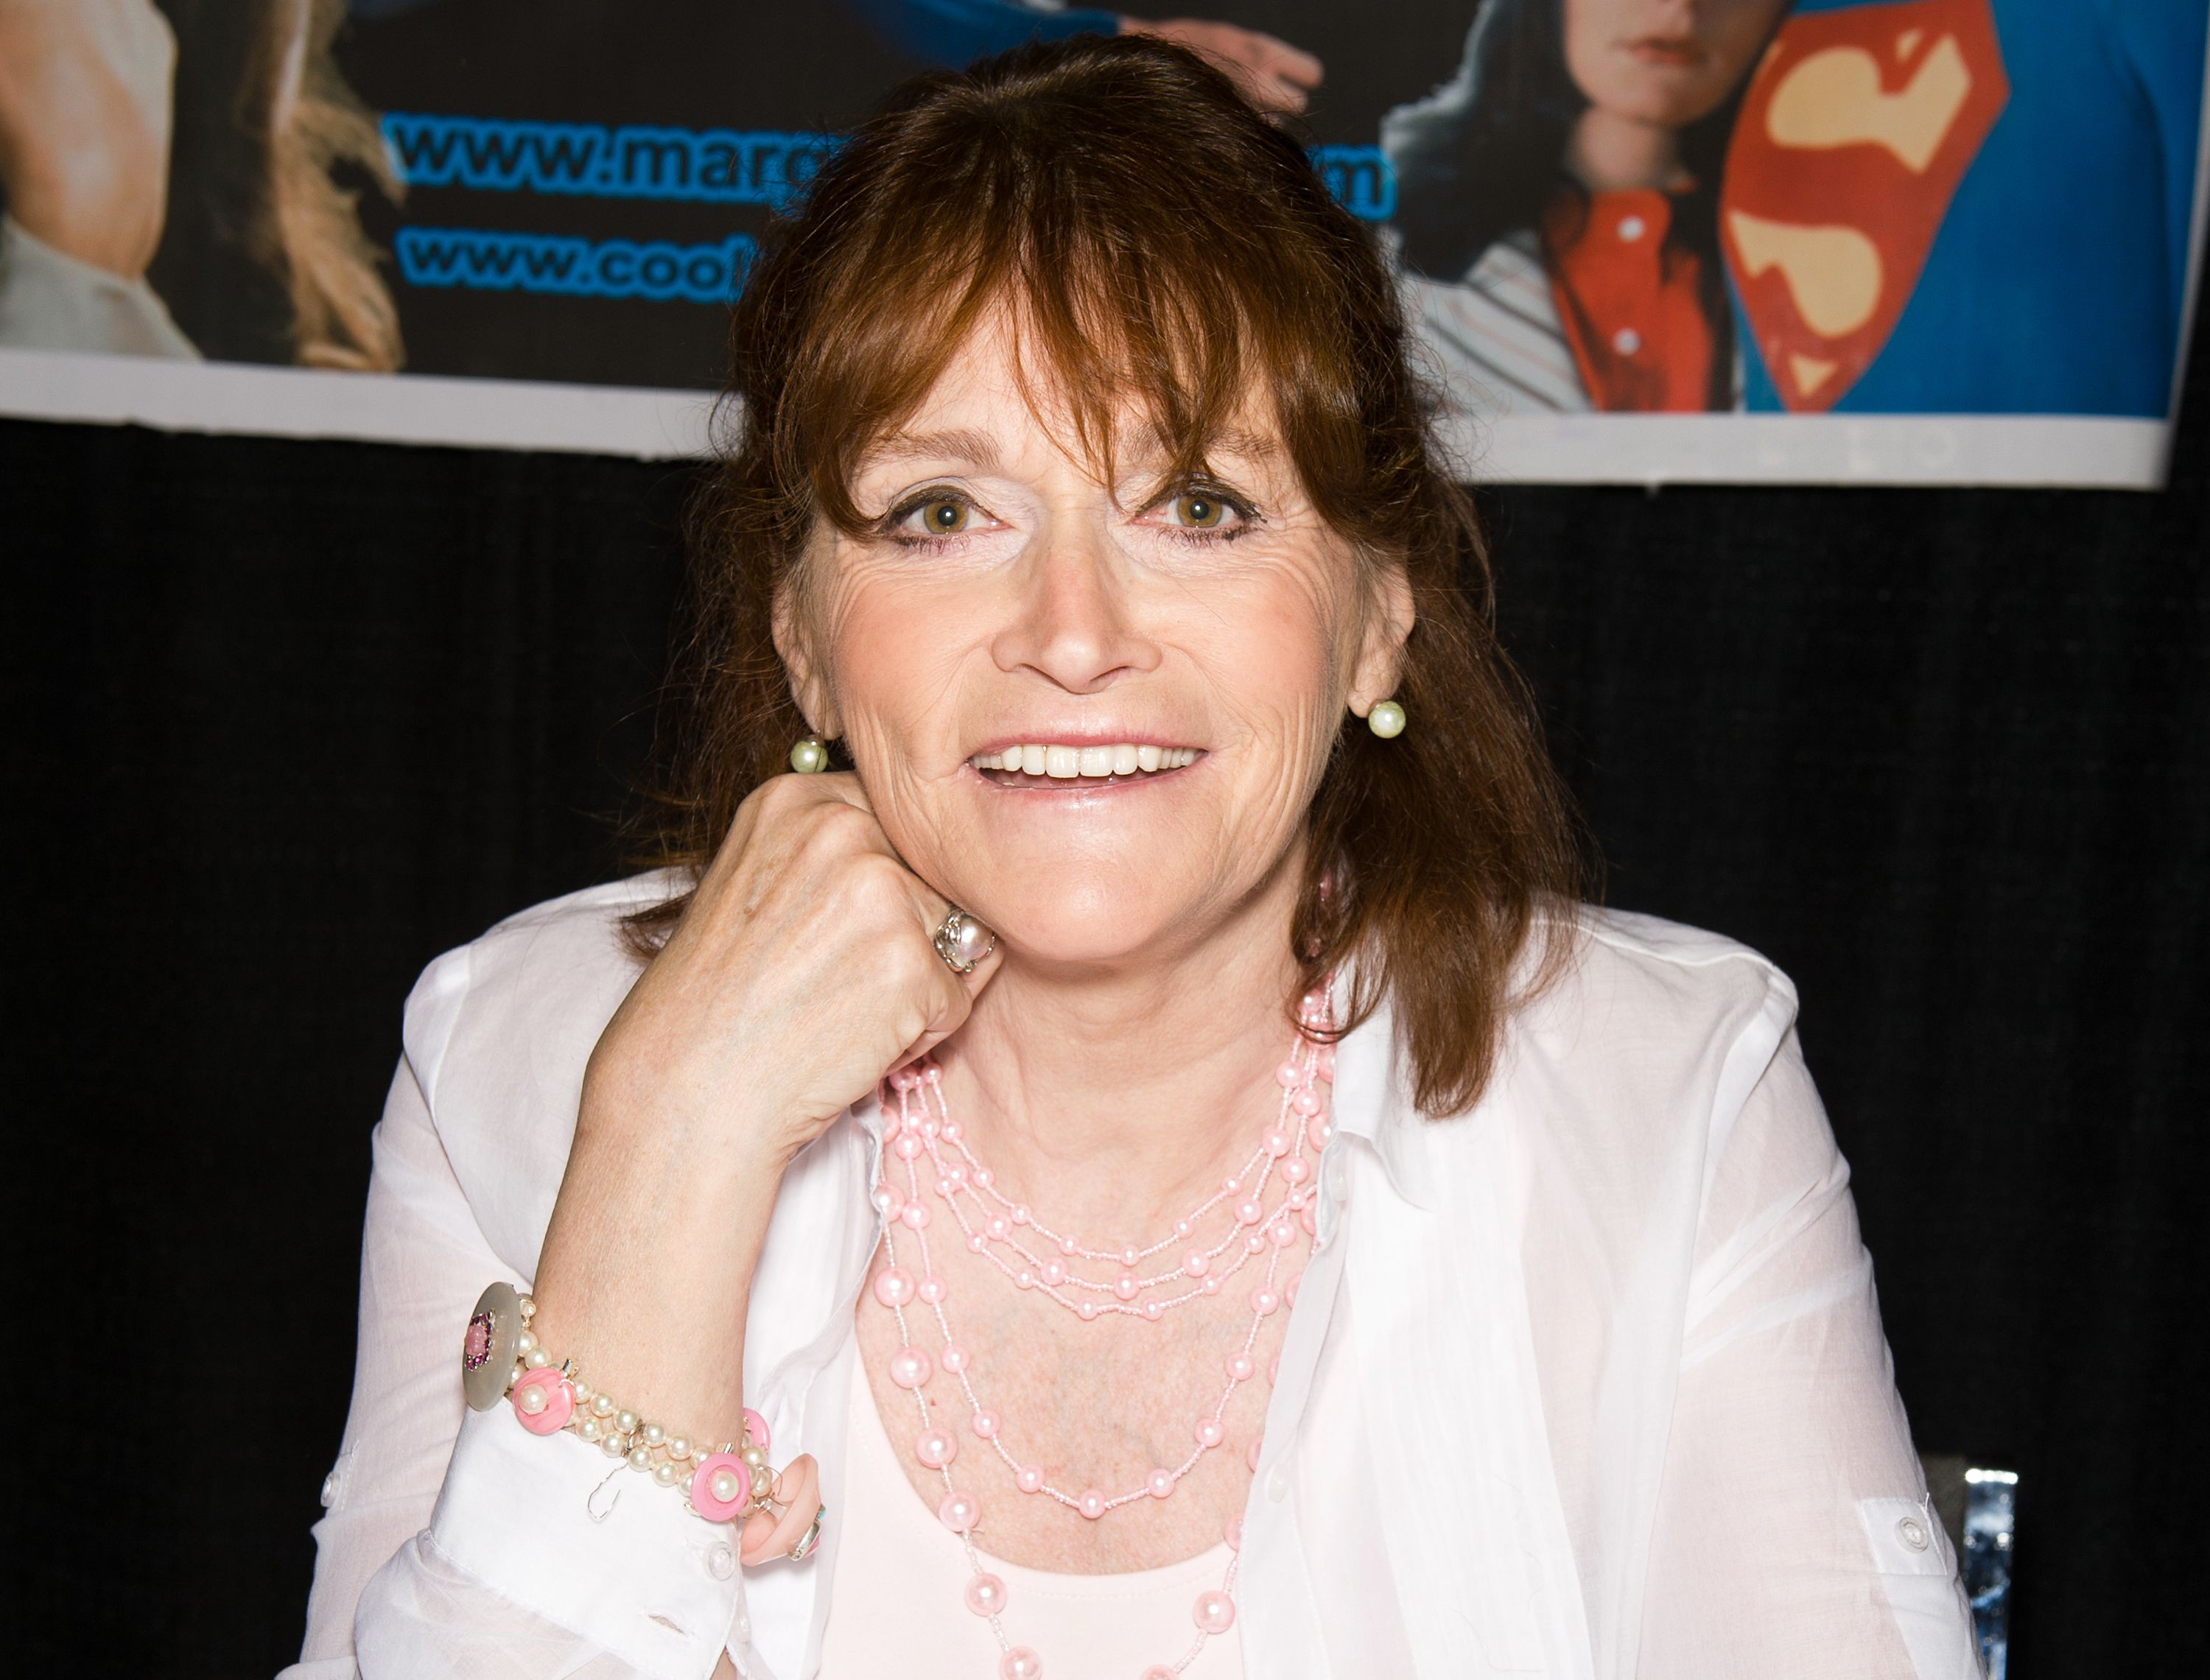 Margot Kidder atWizard World's Philadelphia Comic Con at the Pennsylvania Convention Center on June 18, 2011, in Philadelphia, Pennsylvania | Photo:Gilbert Carrasquillo/FilmMagic/Getty Images